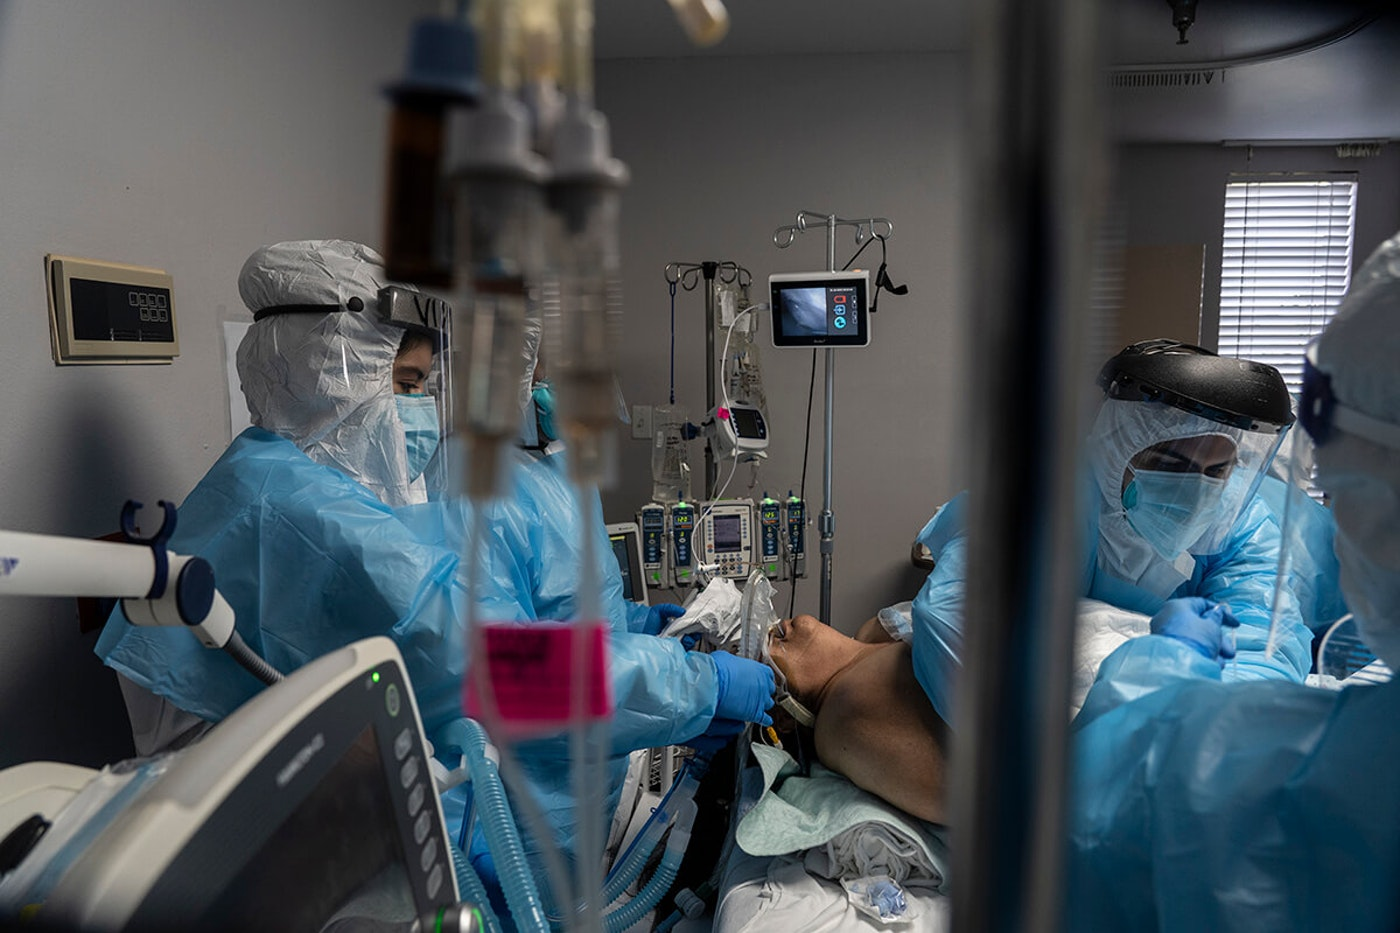 medical workers in full COVID gear surround intubated patient